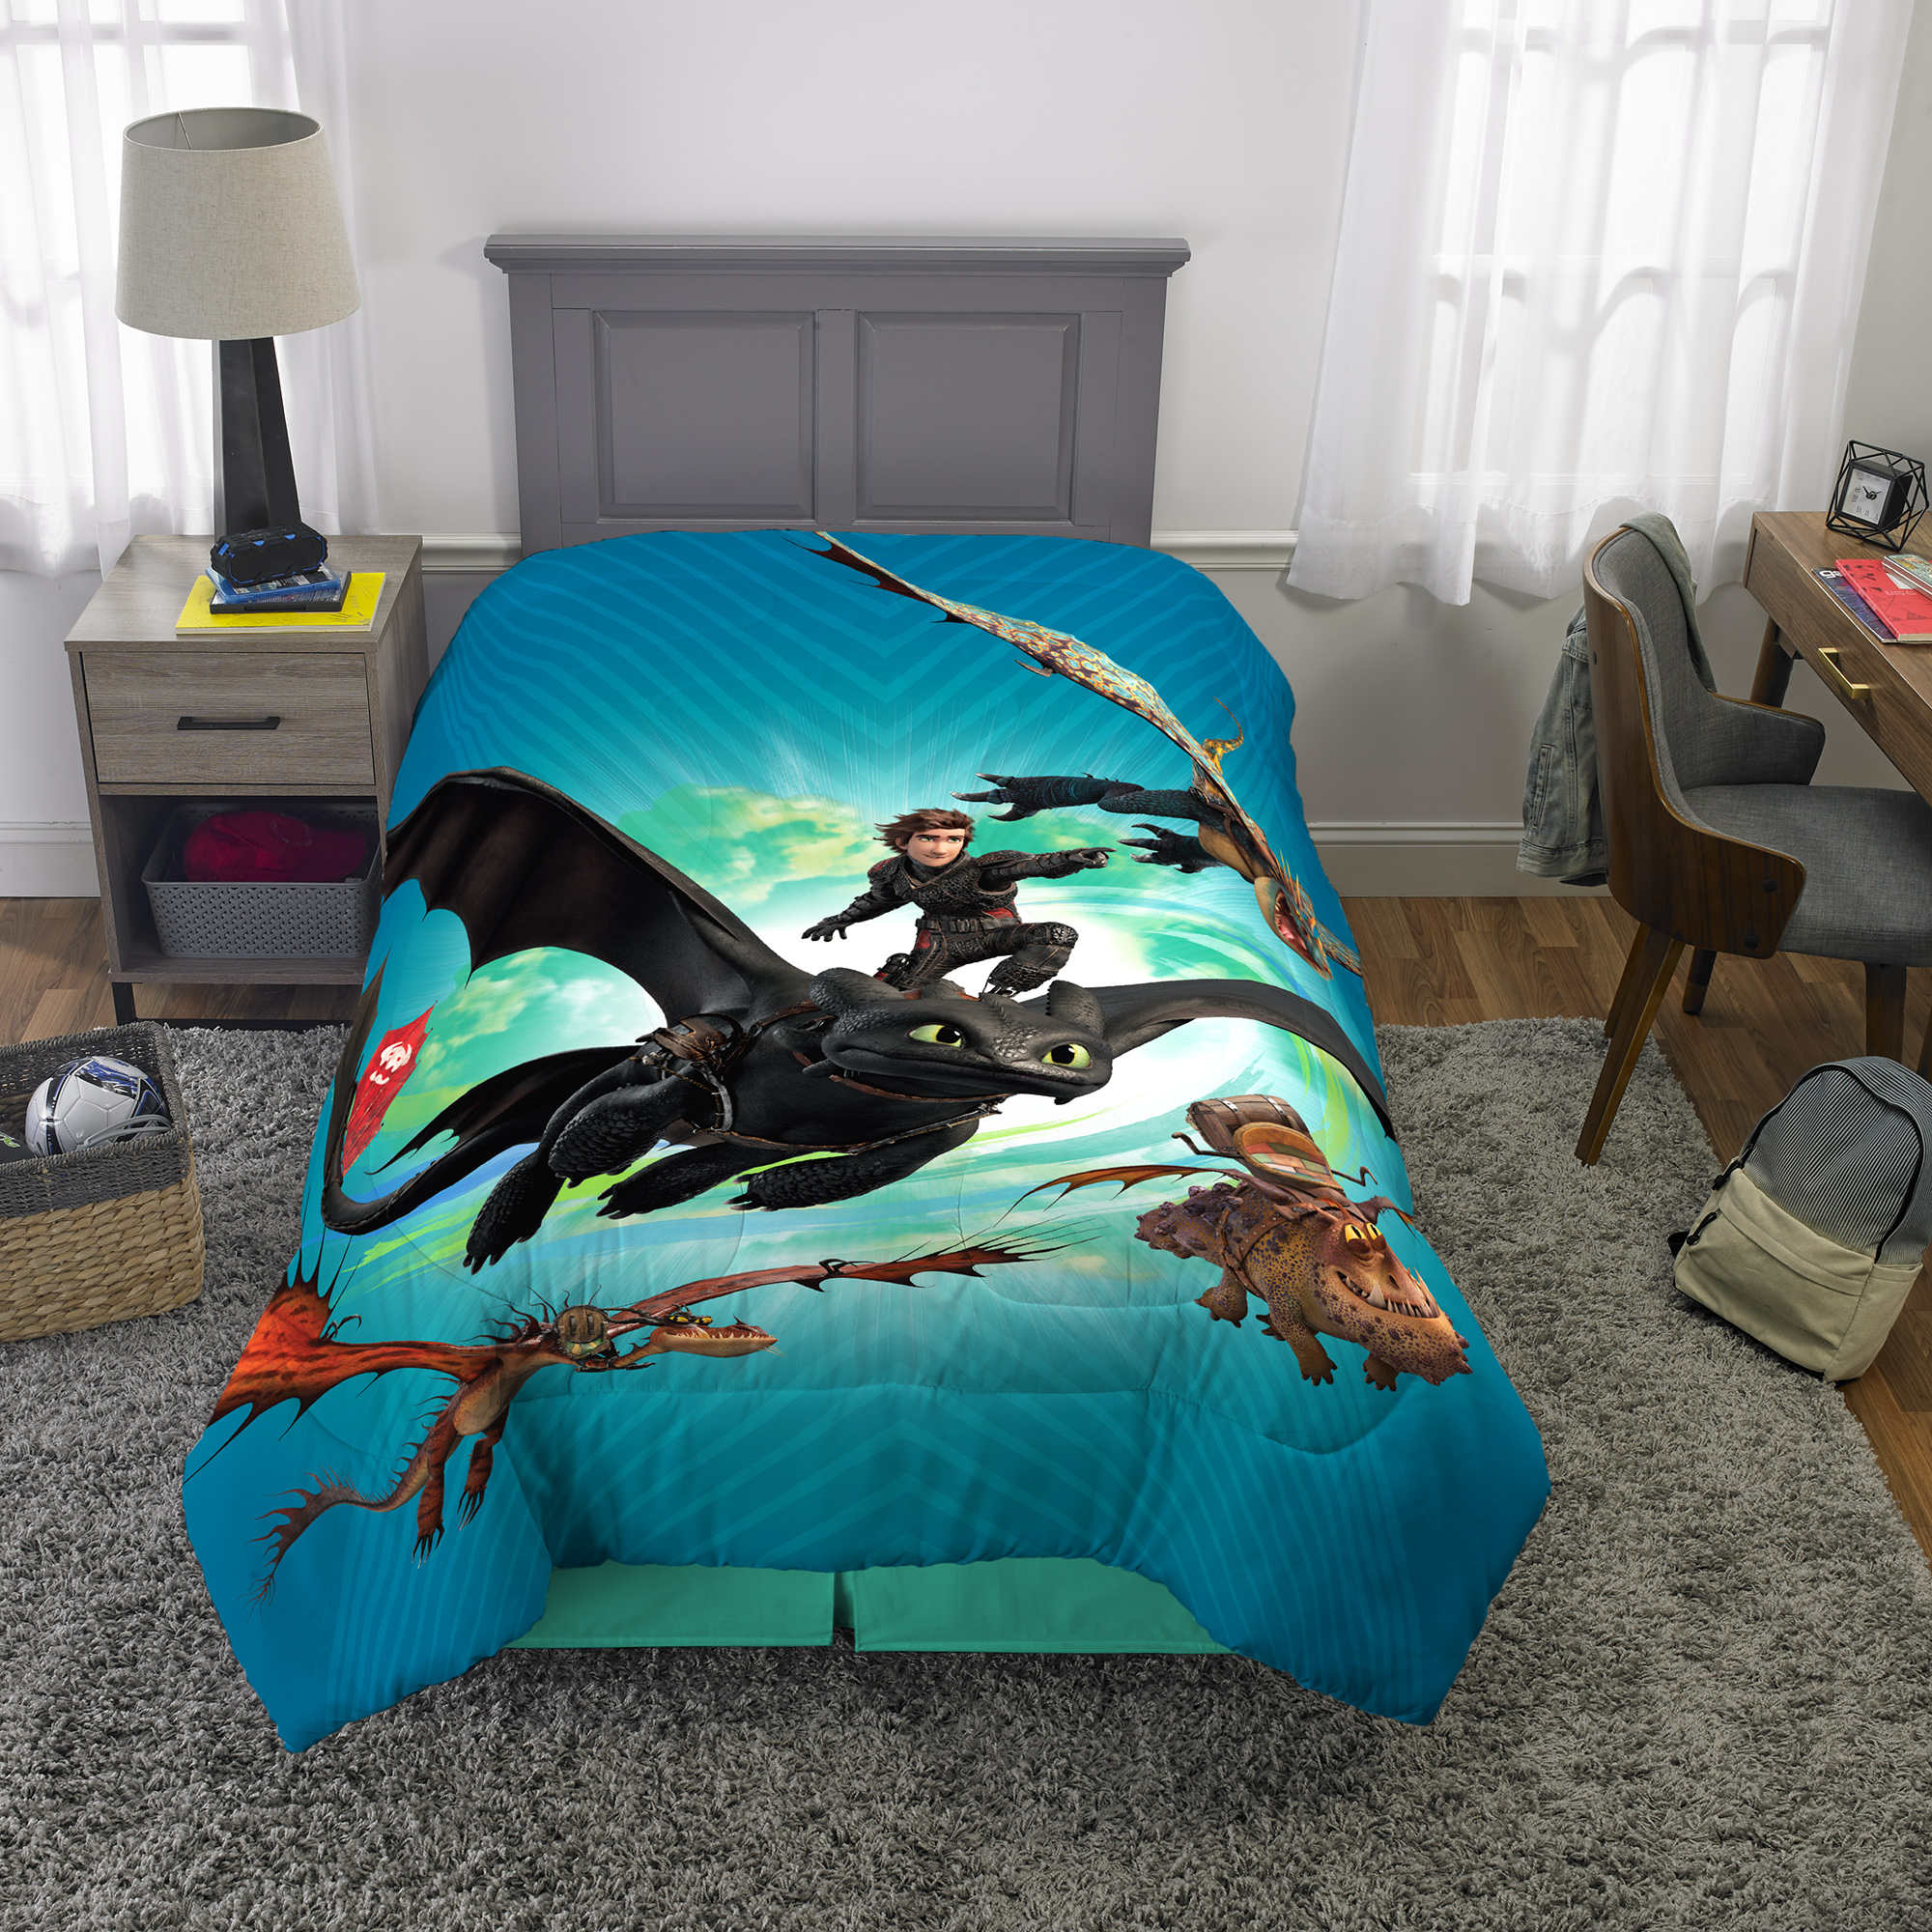 How to Train Your Dragon 3 Comforter, Kids Bedding, Twin, Fly Dragon Fly